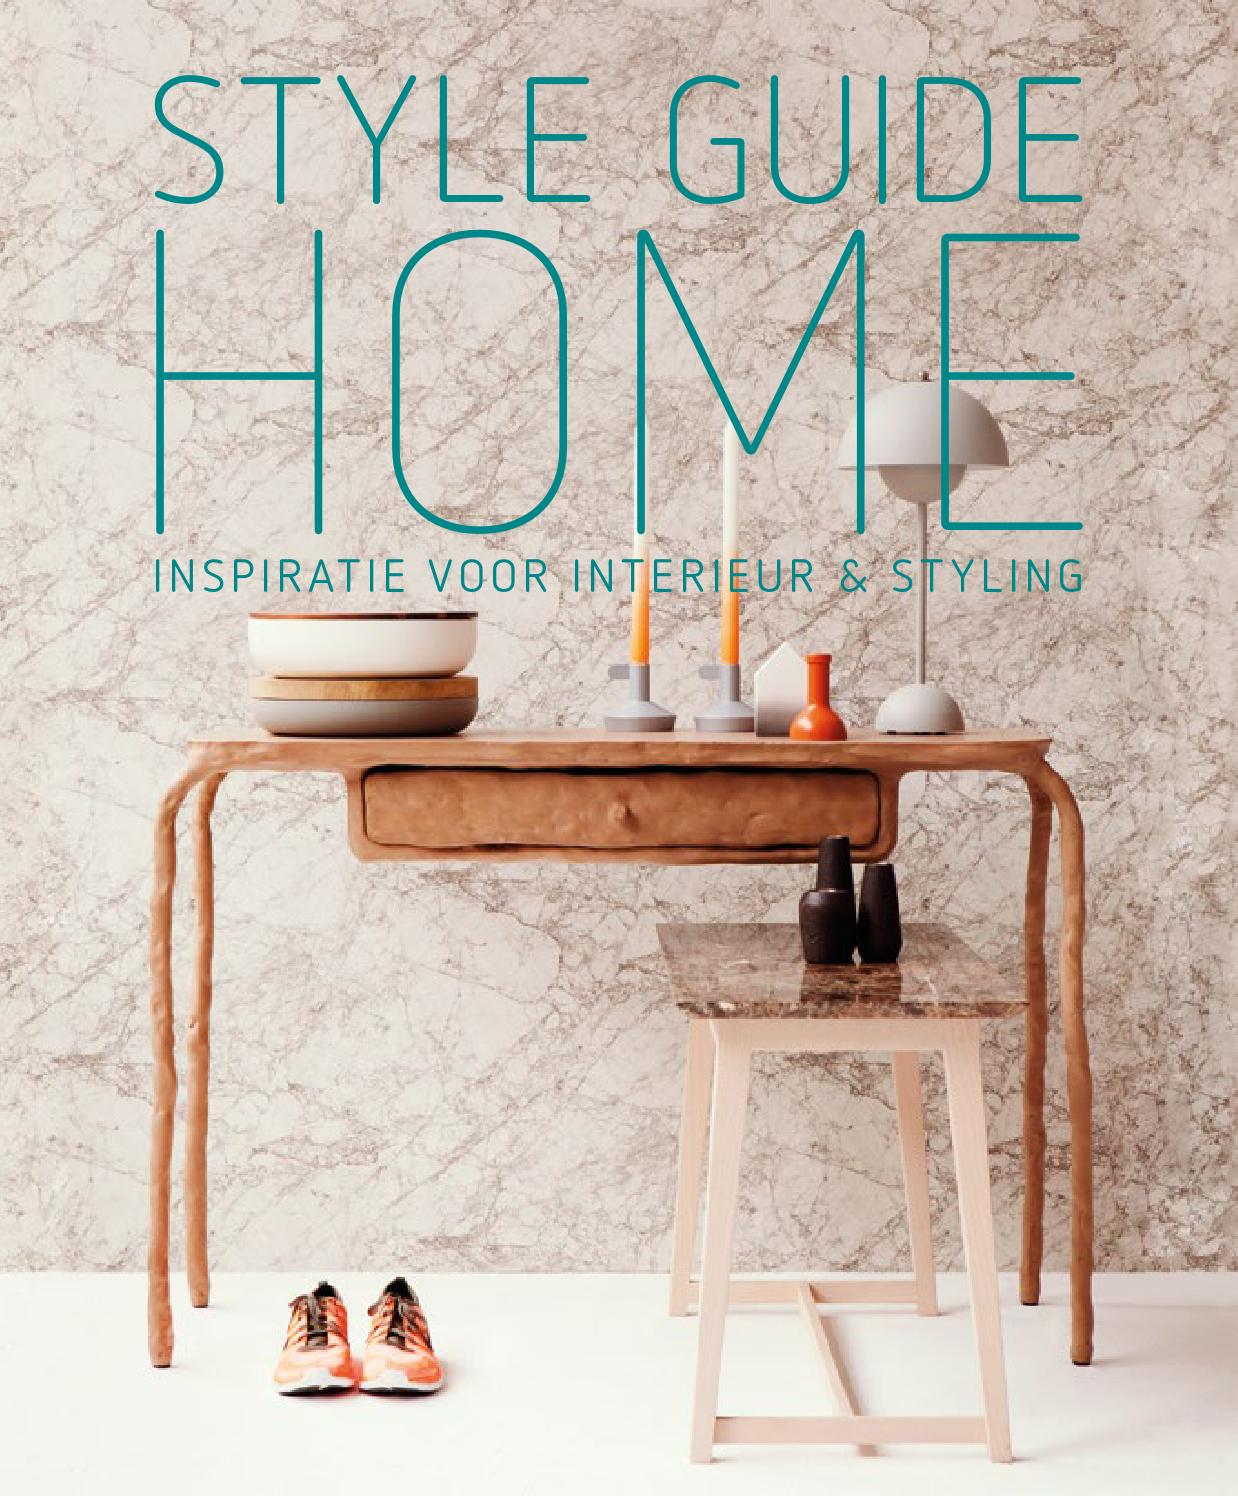 Style Guide Home 2014 - 2015 by Perscentrum Wonen - issuu